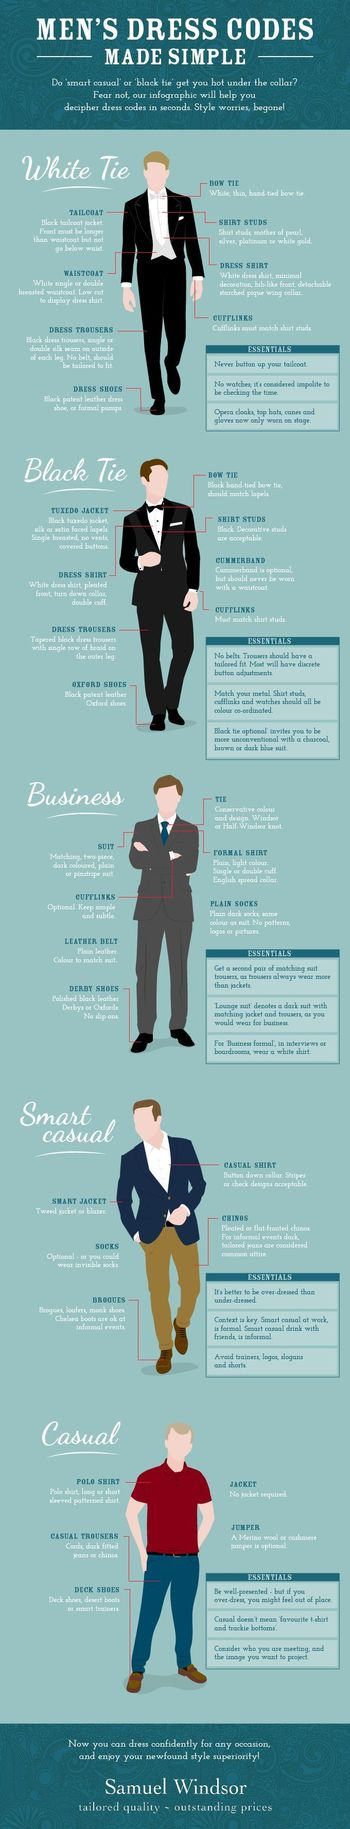 Men's Dress Codes #infographic